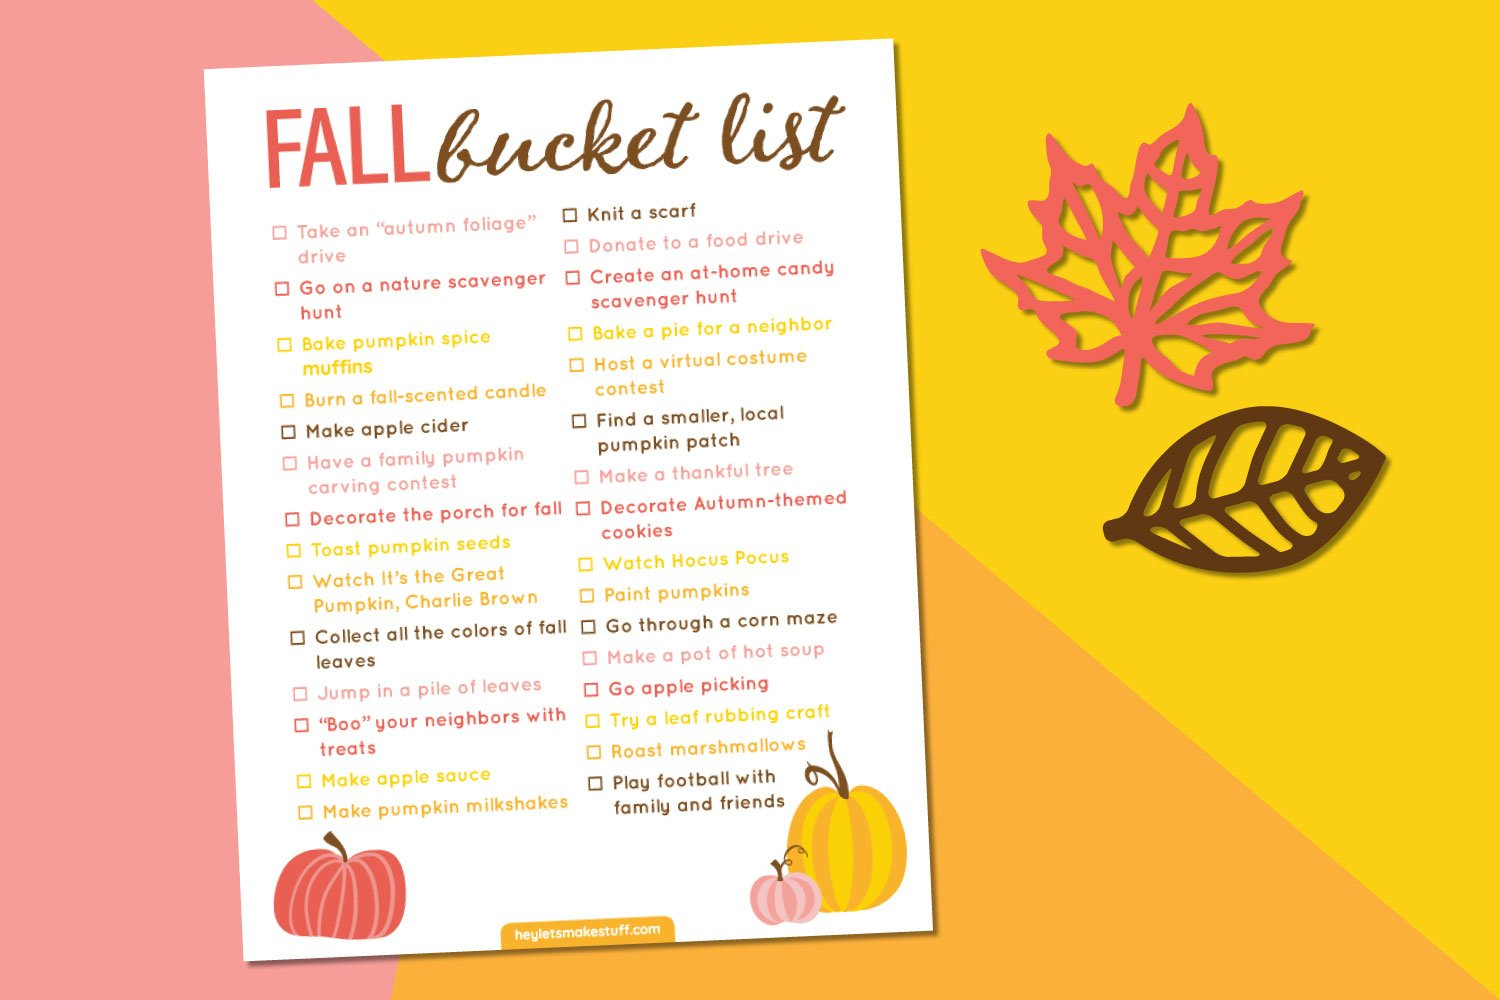 Fall bucket list printable on pink, orange, and yellow background